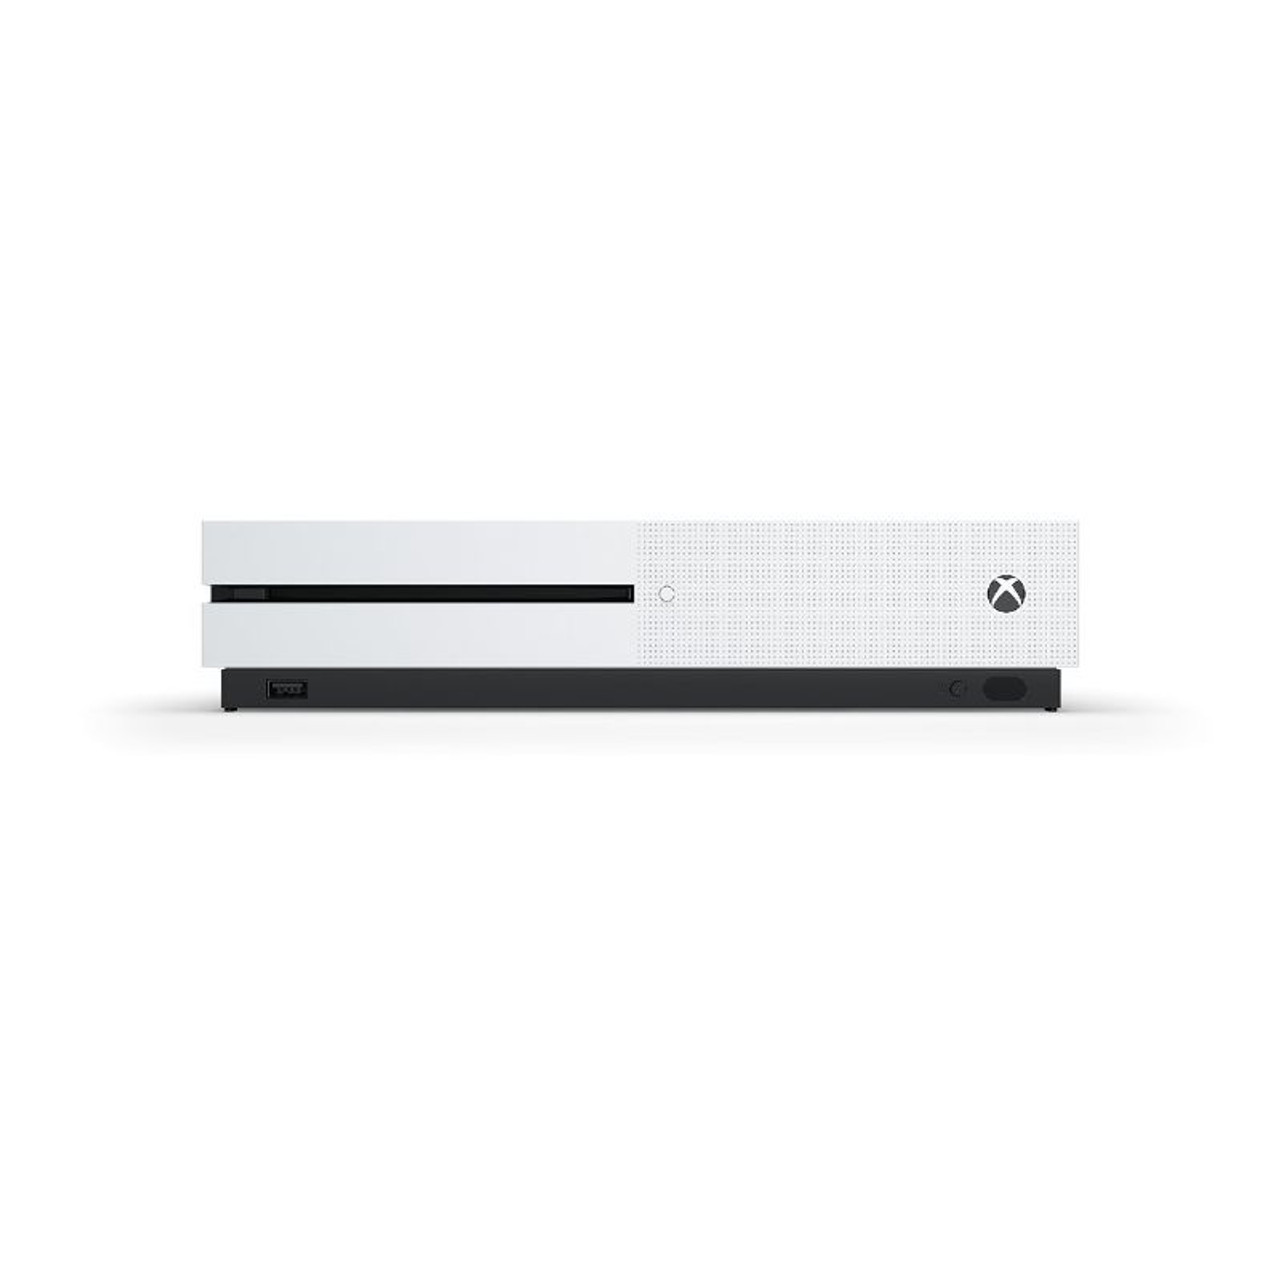 Xbox One S 2TB Console Launch Edition - White